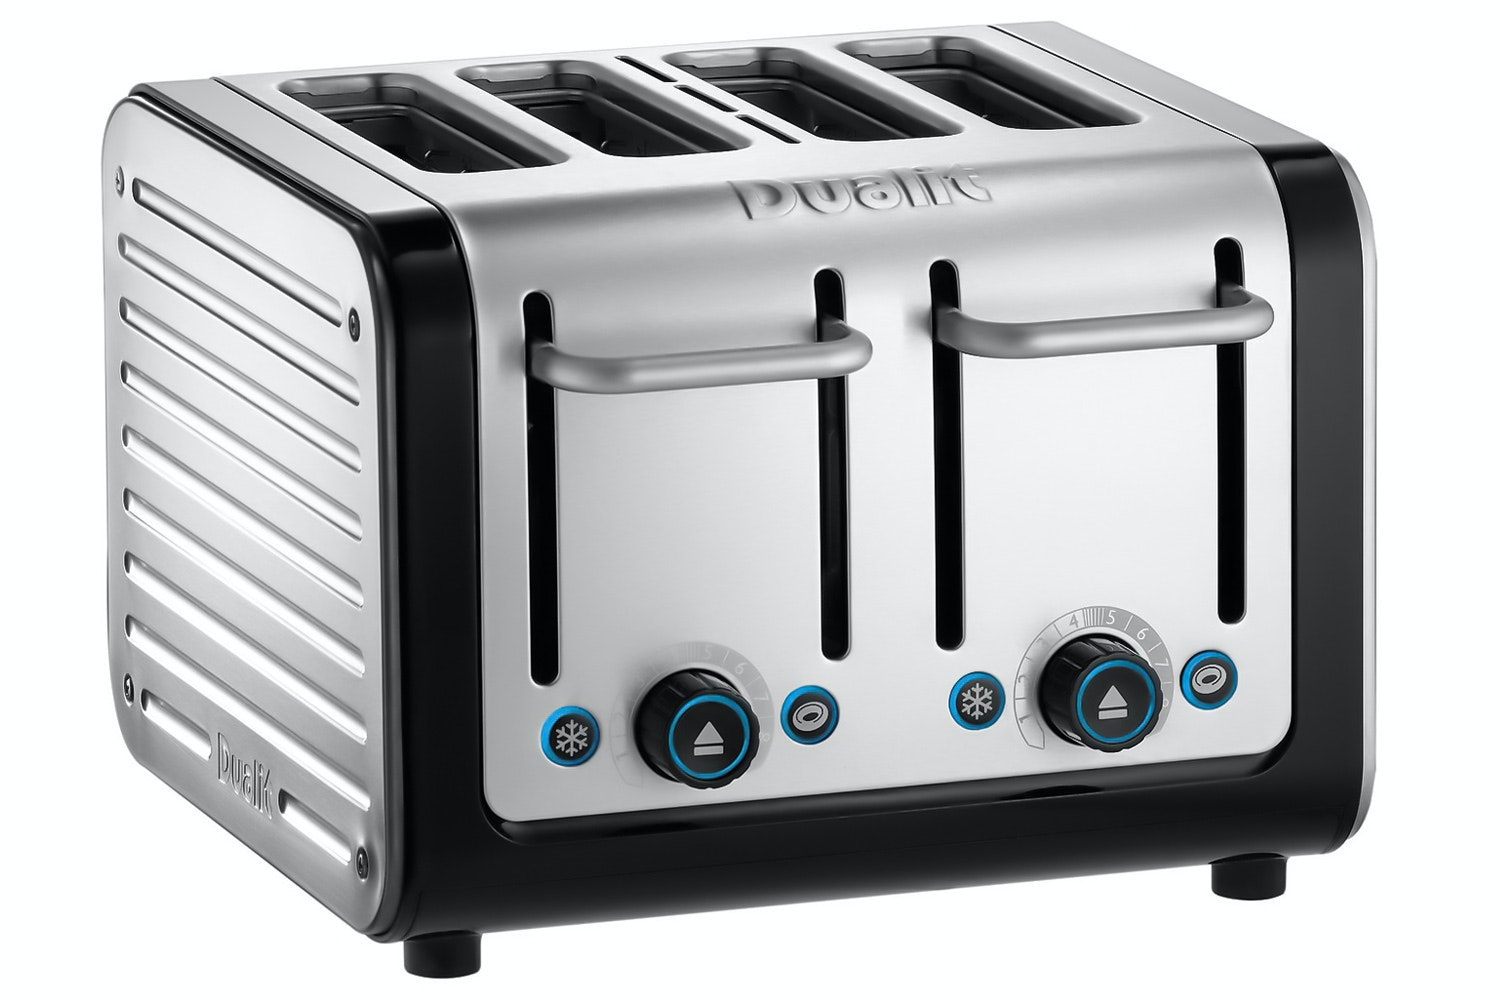 Dualit Architect 4 Slice Toaster | 46505 | Stainless Steel